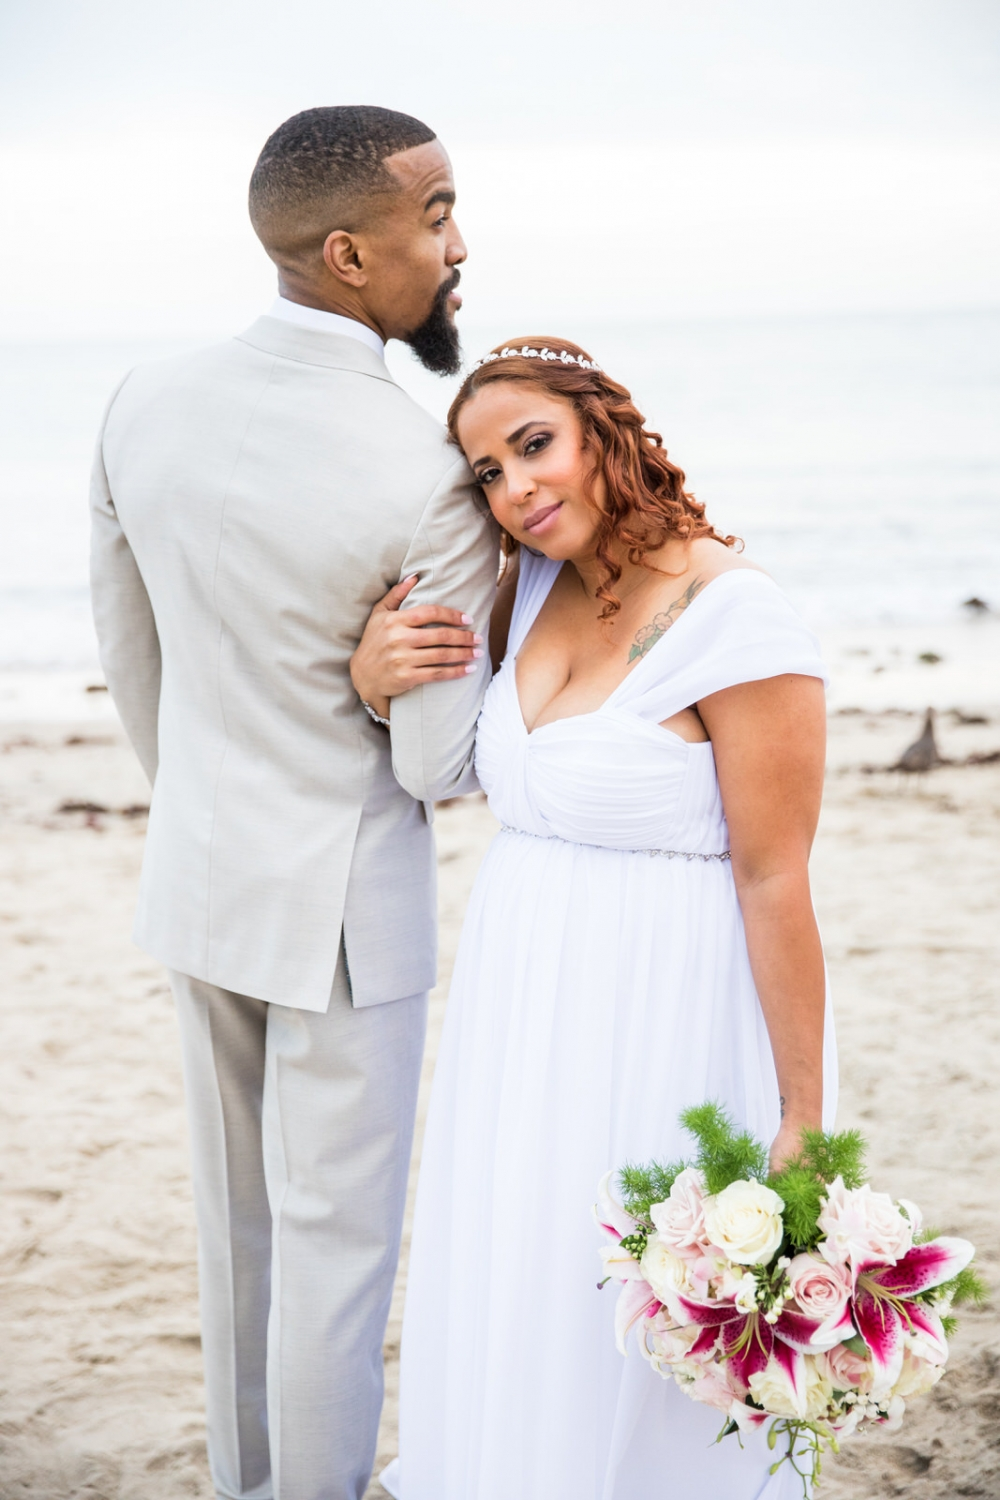 Photo by: @GlennPictures   www.glennpictures.com